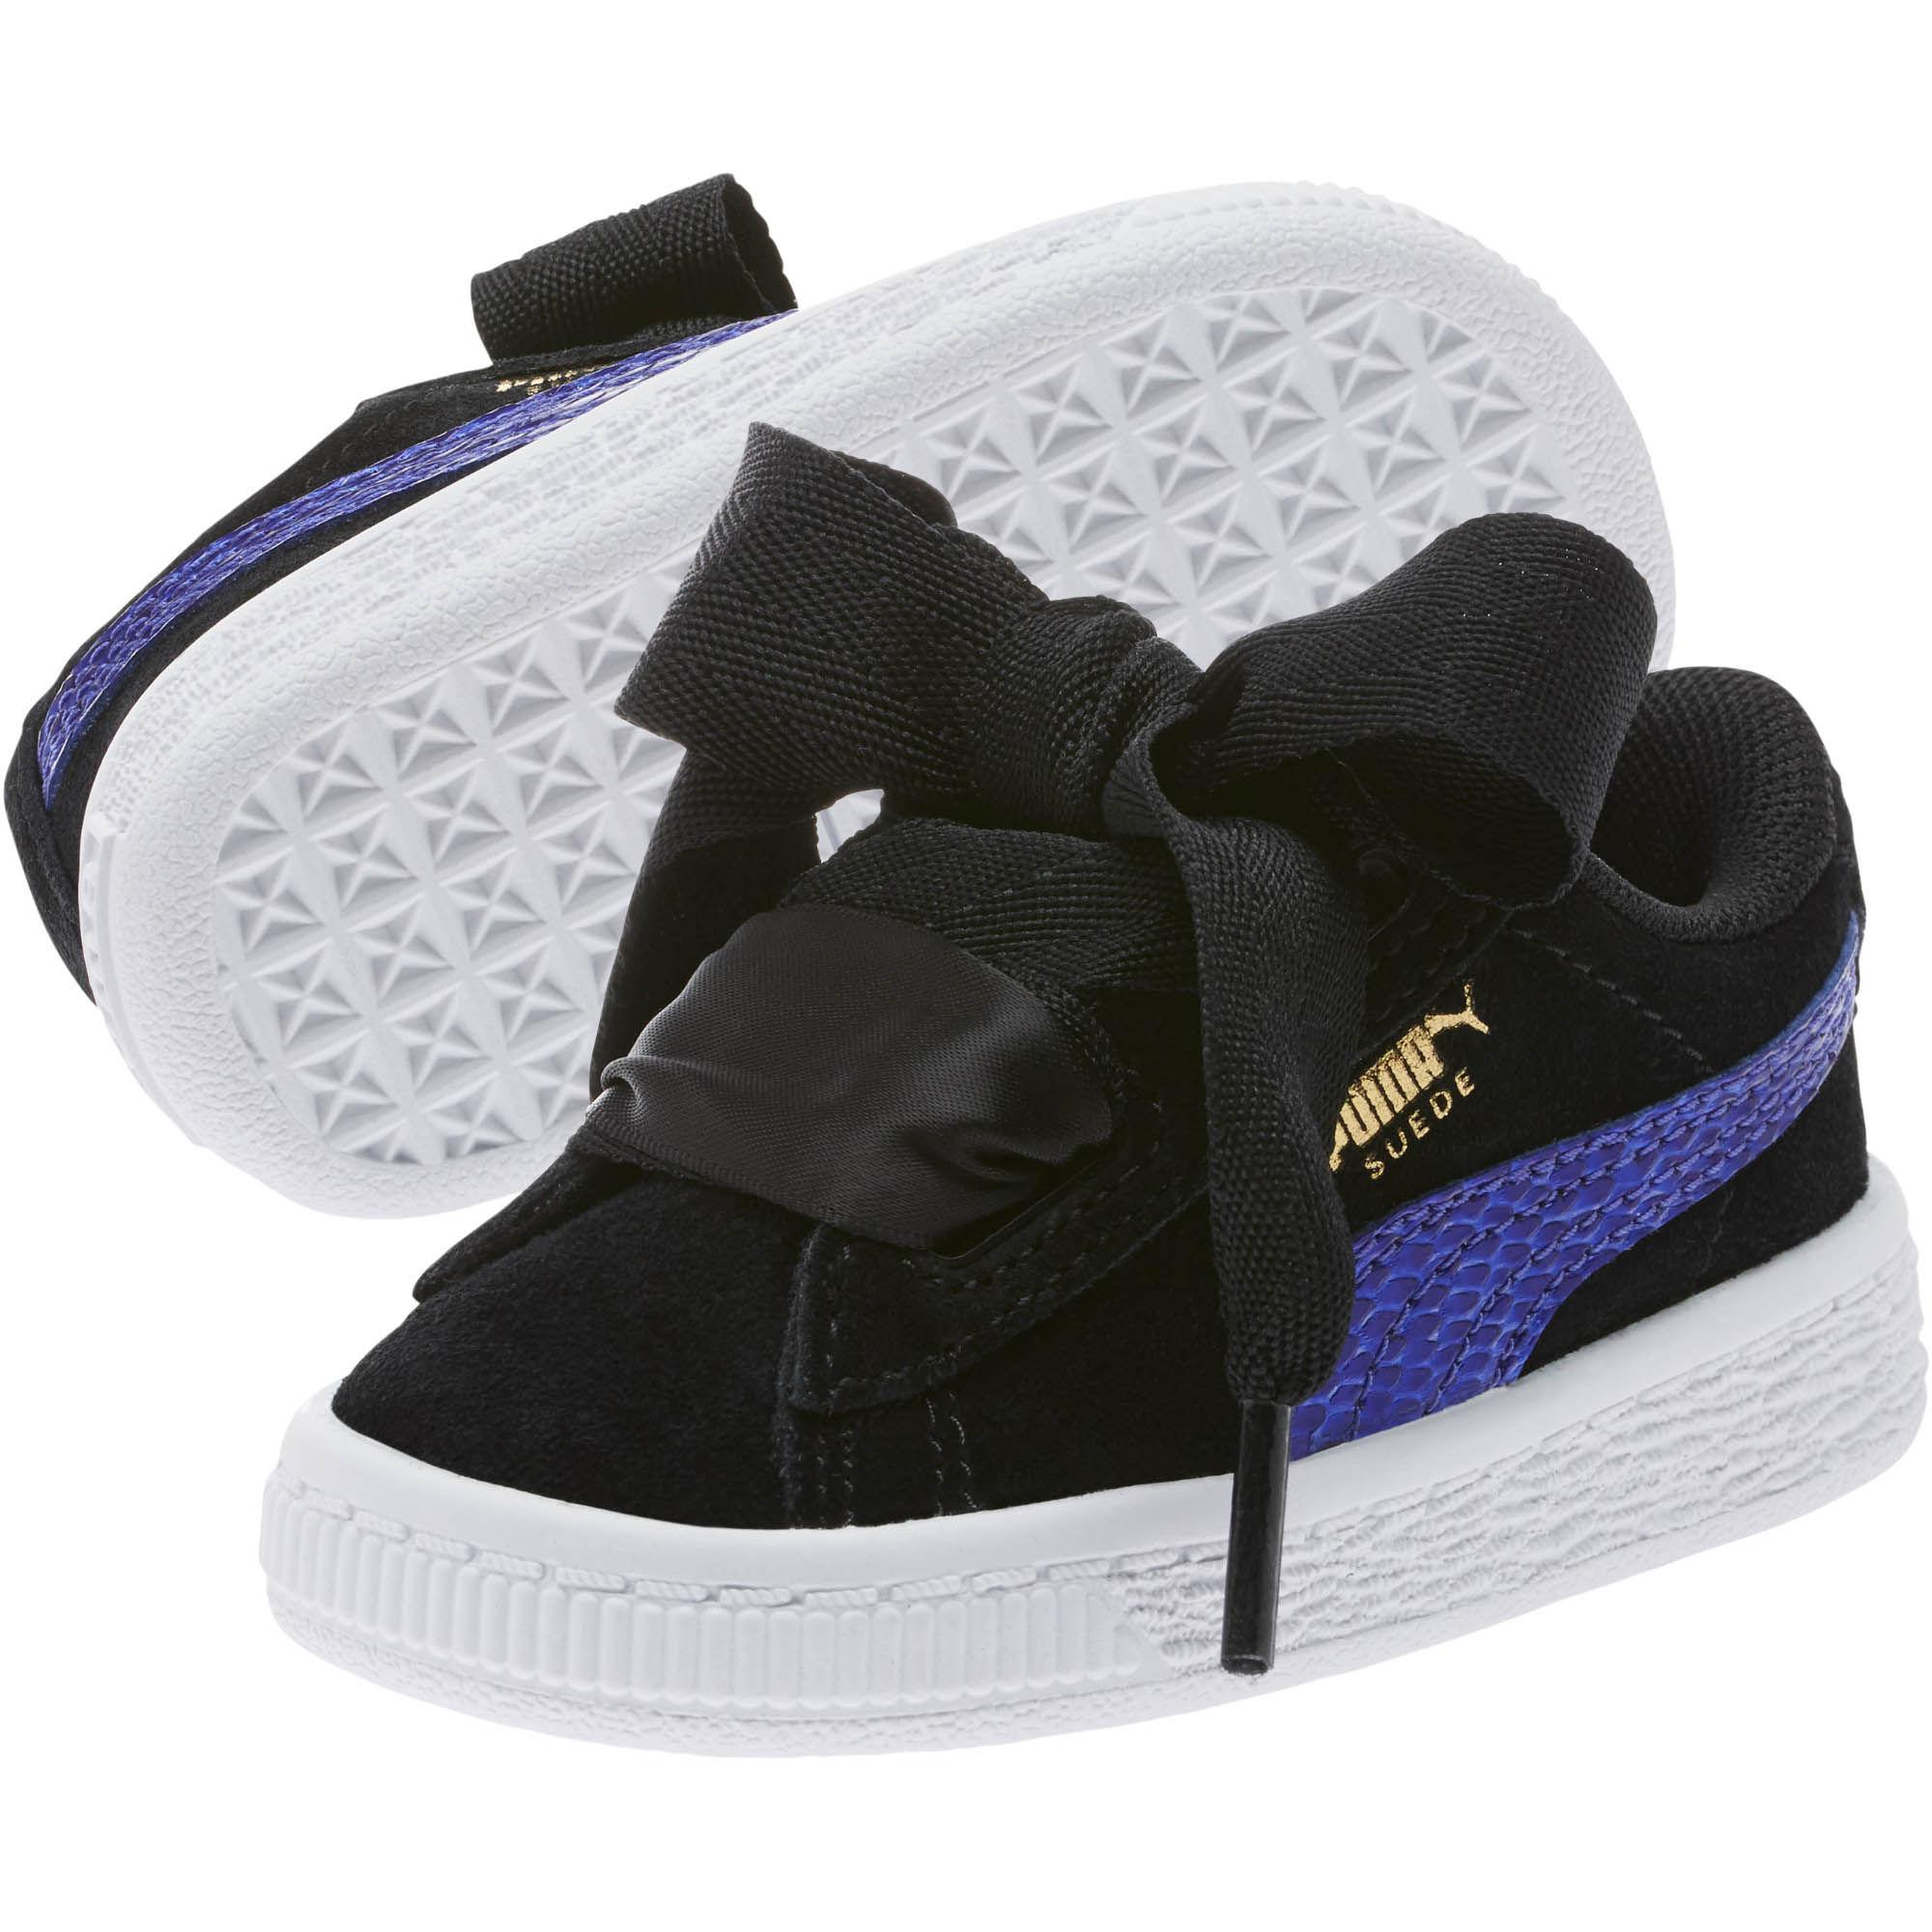 af0e4792bbf1 puma-Puma-Black-Baja-Blue-Suede-Heart-Snake-Girls-Sneakers.jpeg